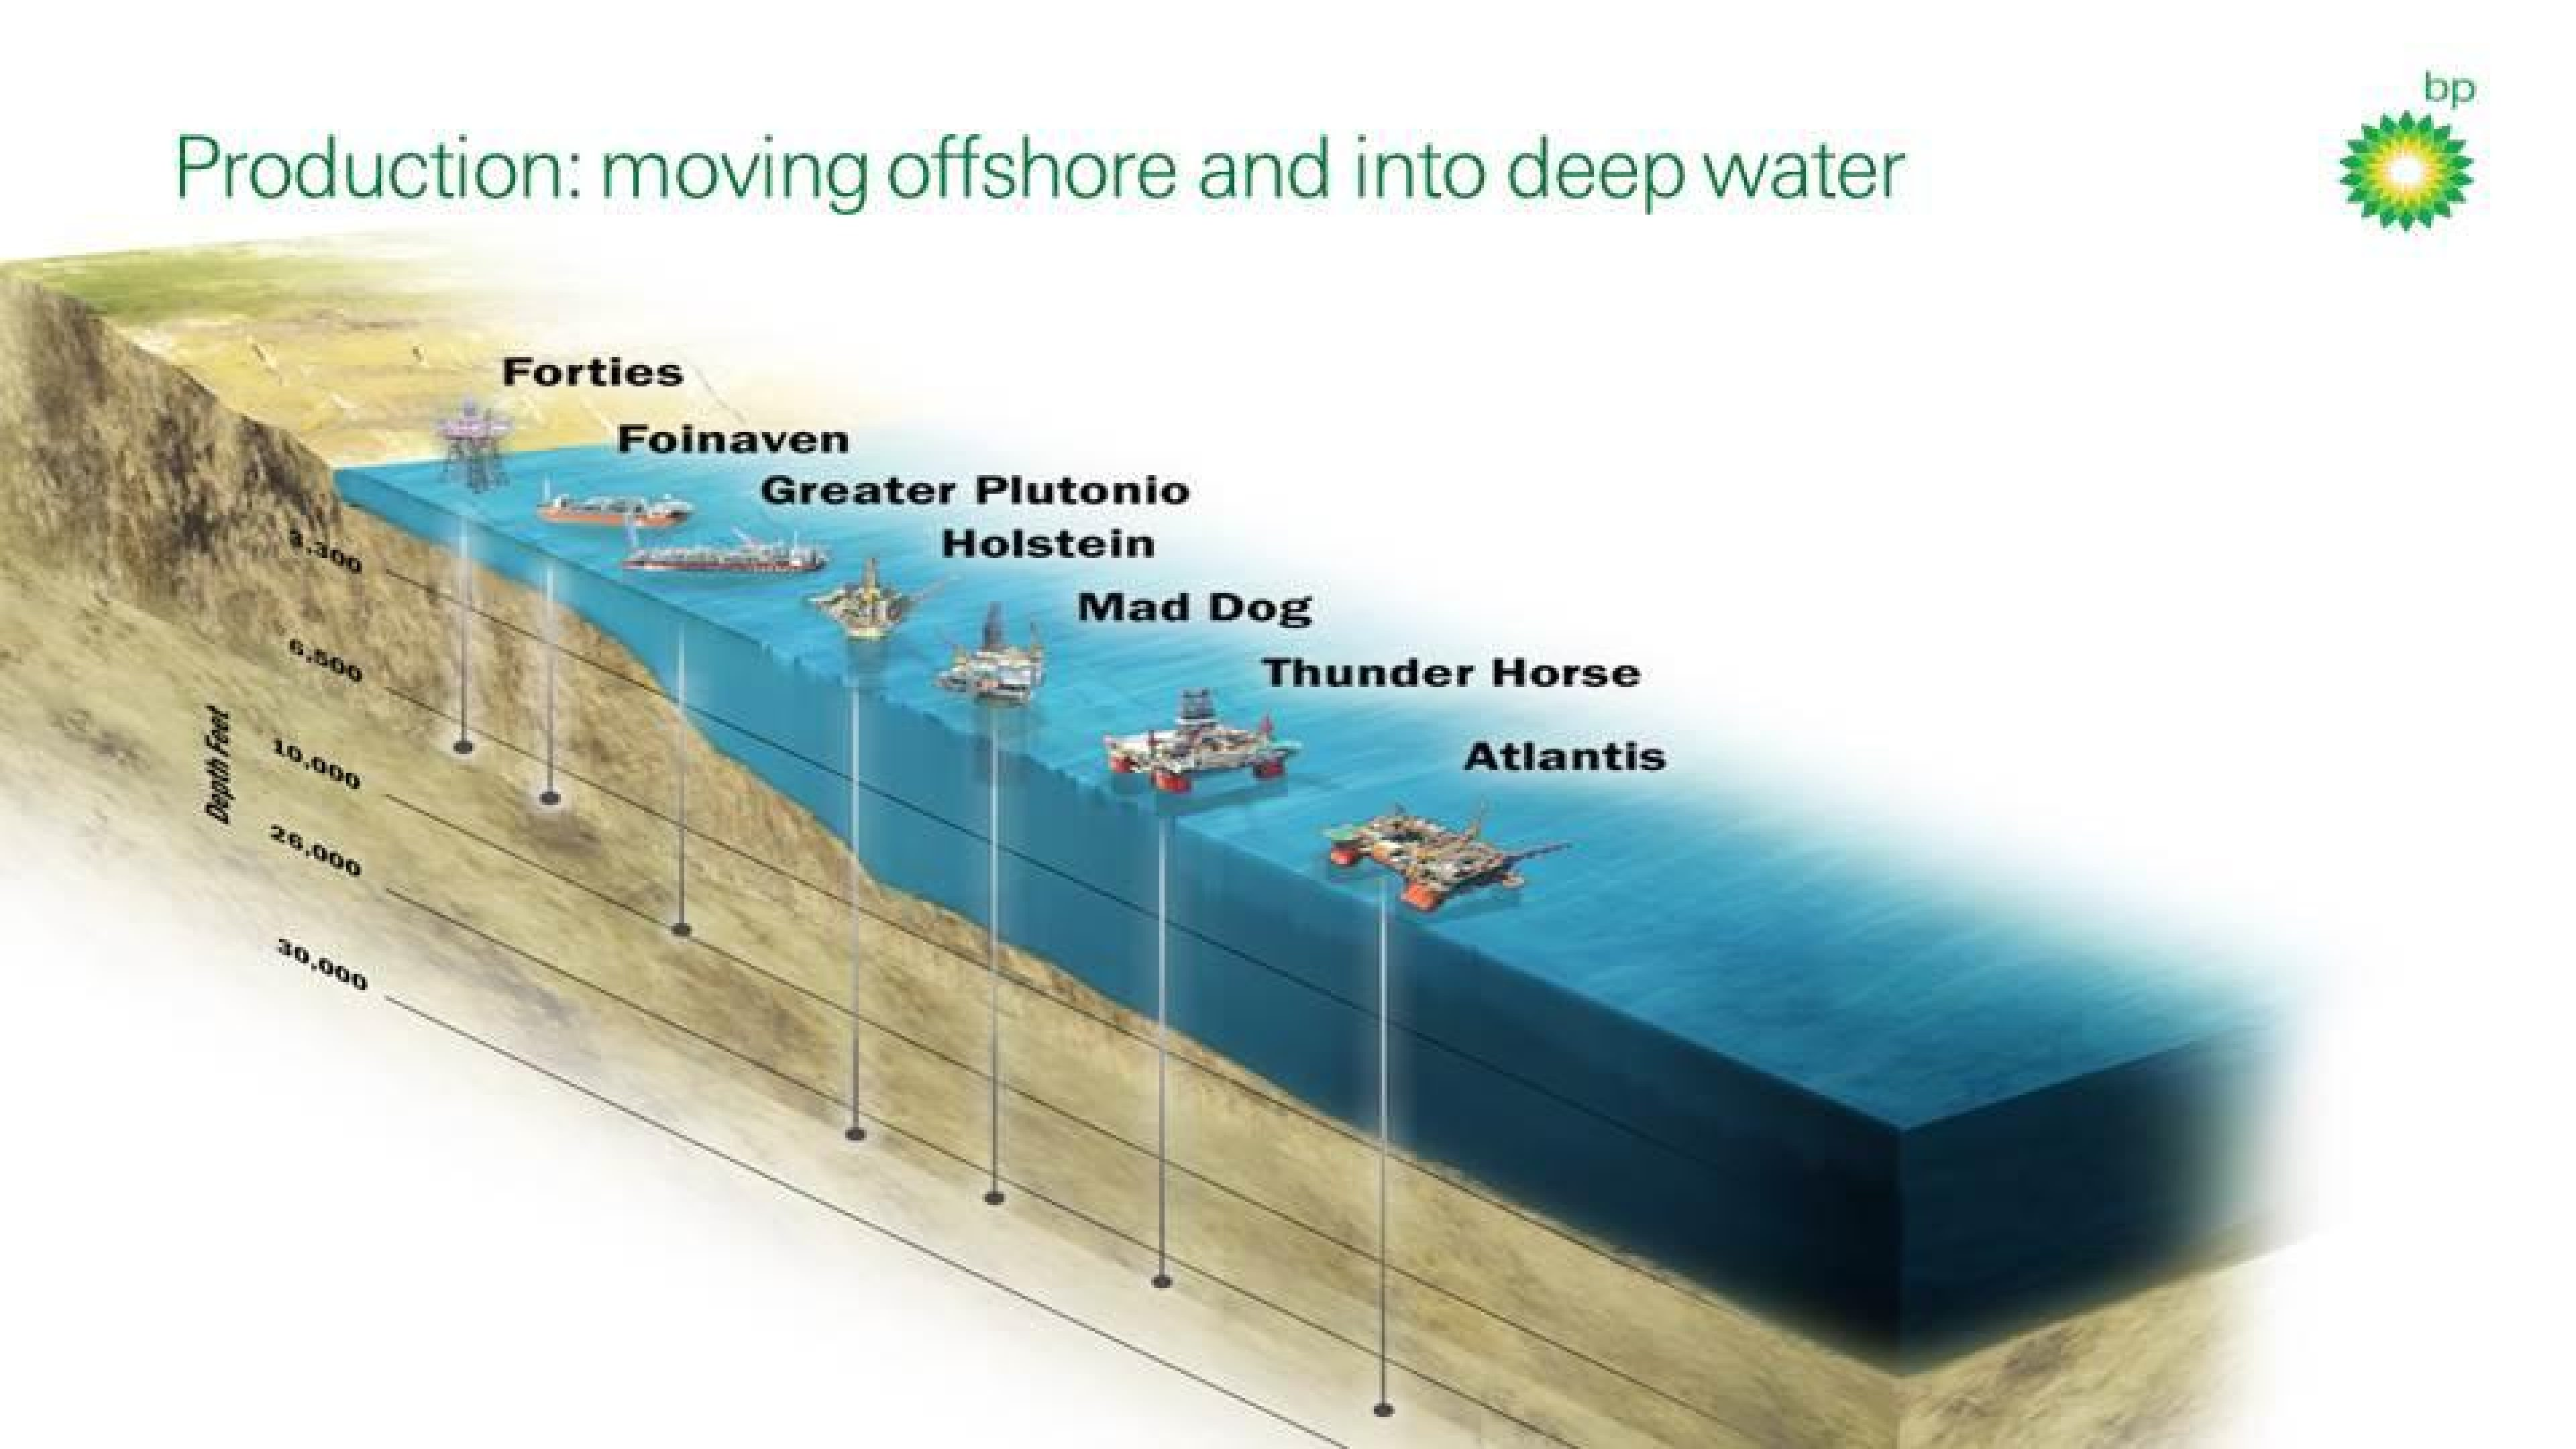 Production - moving offshore and into deep water